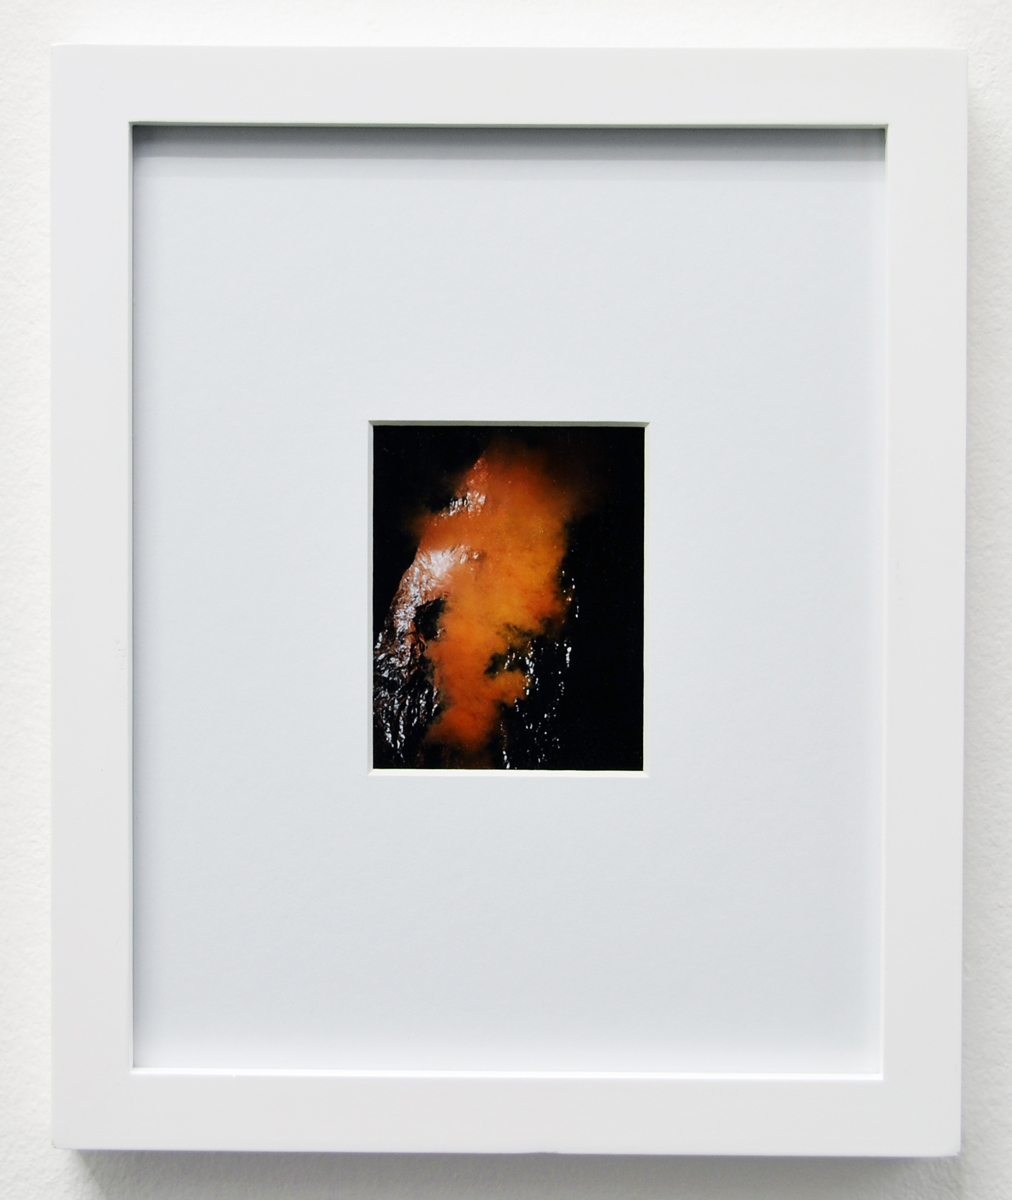 John Knuth | Elevated Uncertainty 24, 2013. Polaroid, framed 25x20 cm